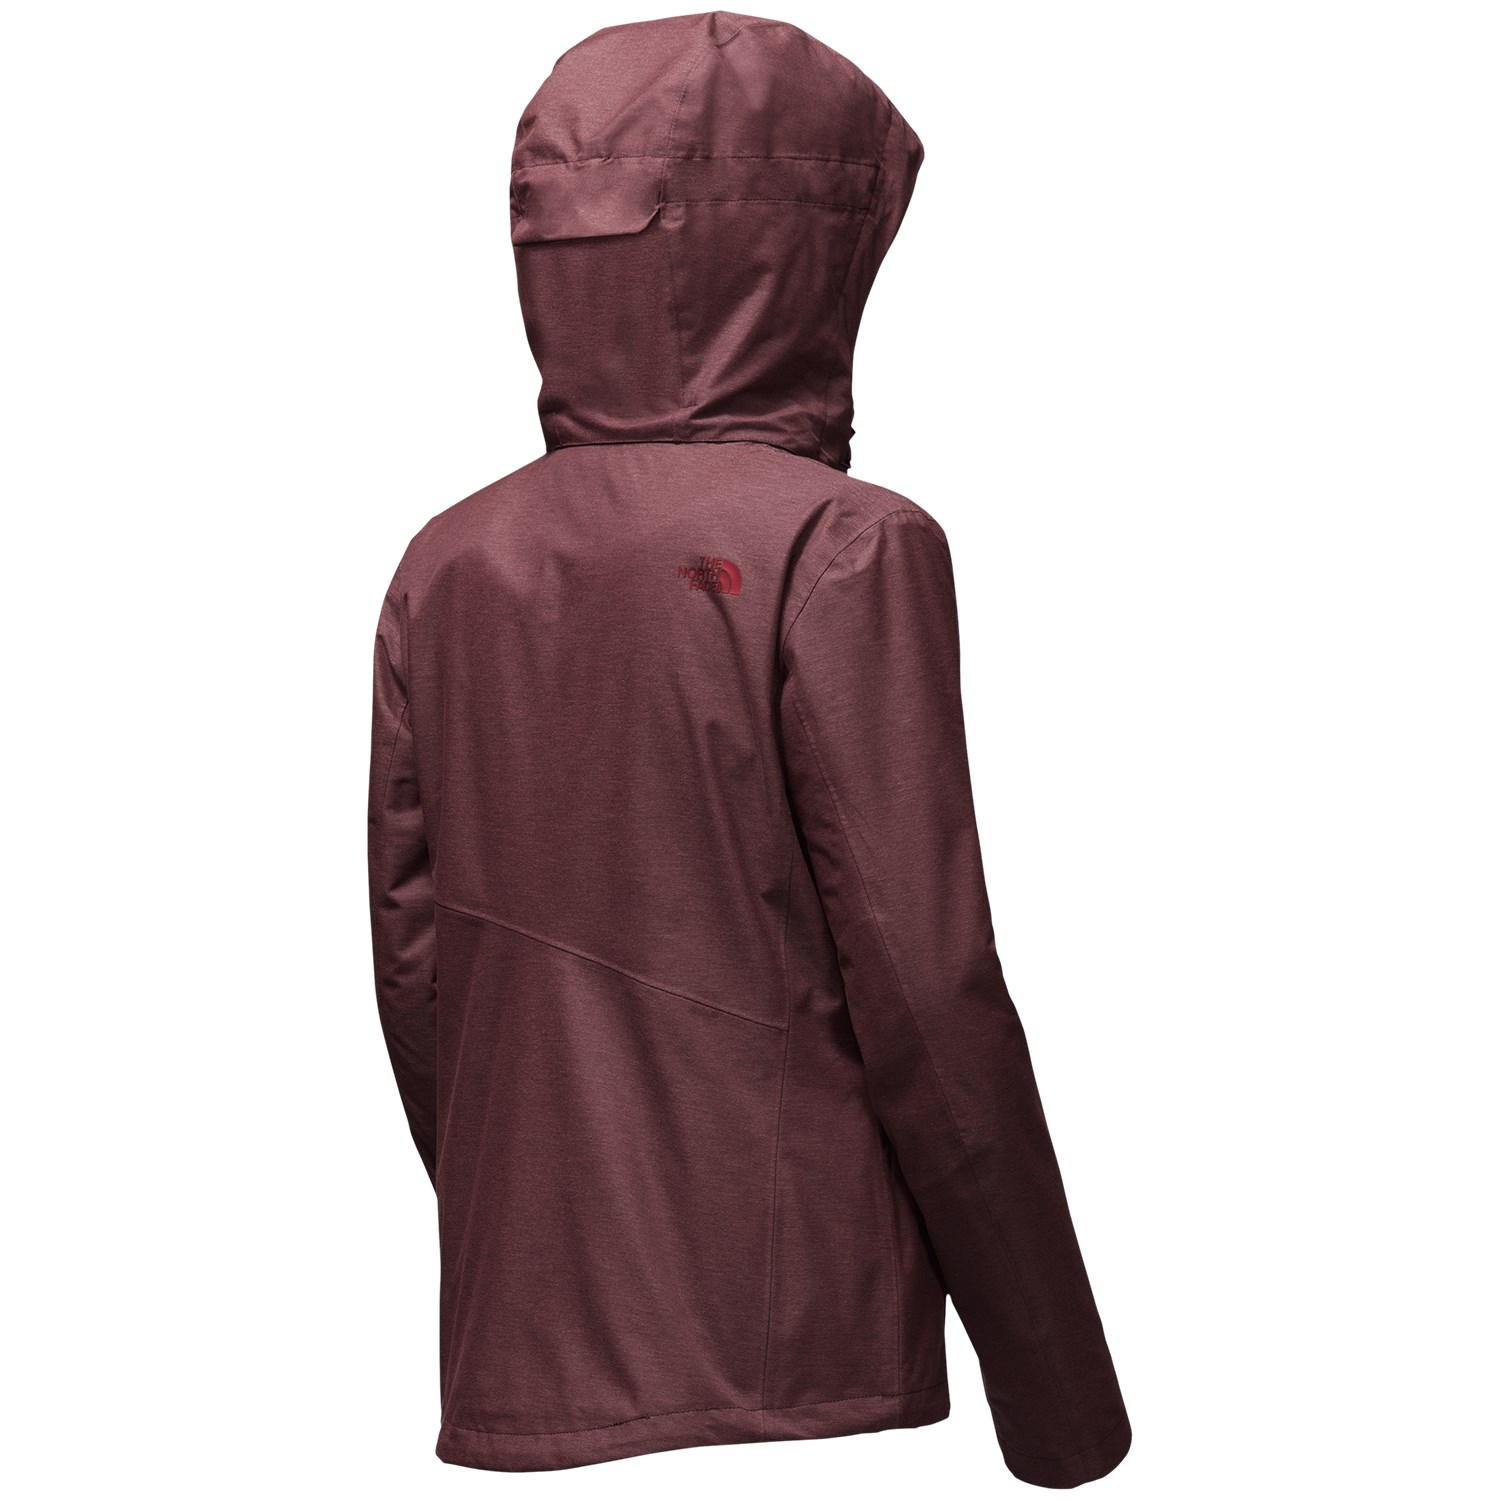 ebe0ed159 The North Face Helata Triclimate Jacket - Women's | evo